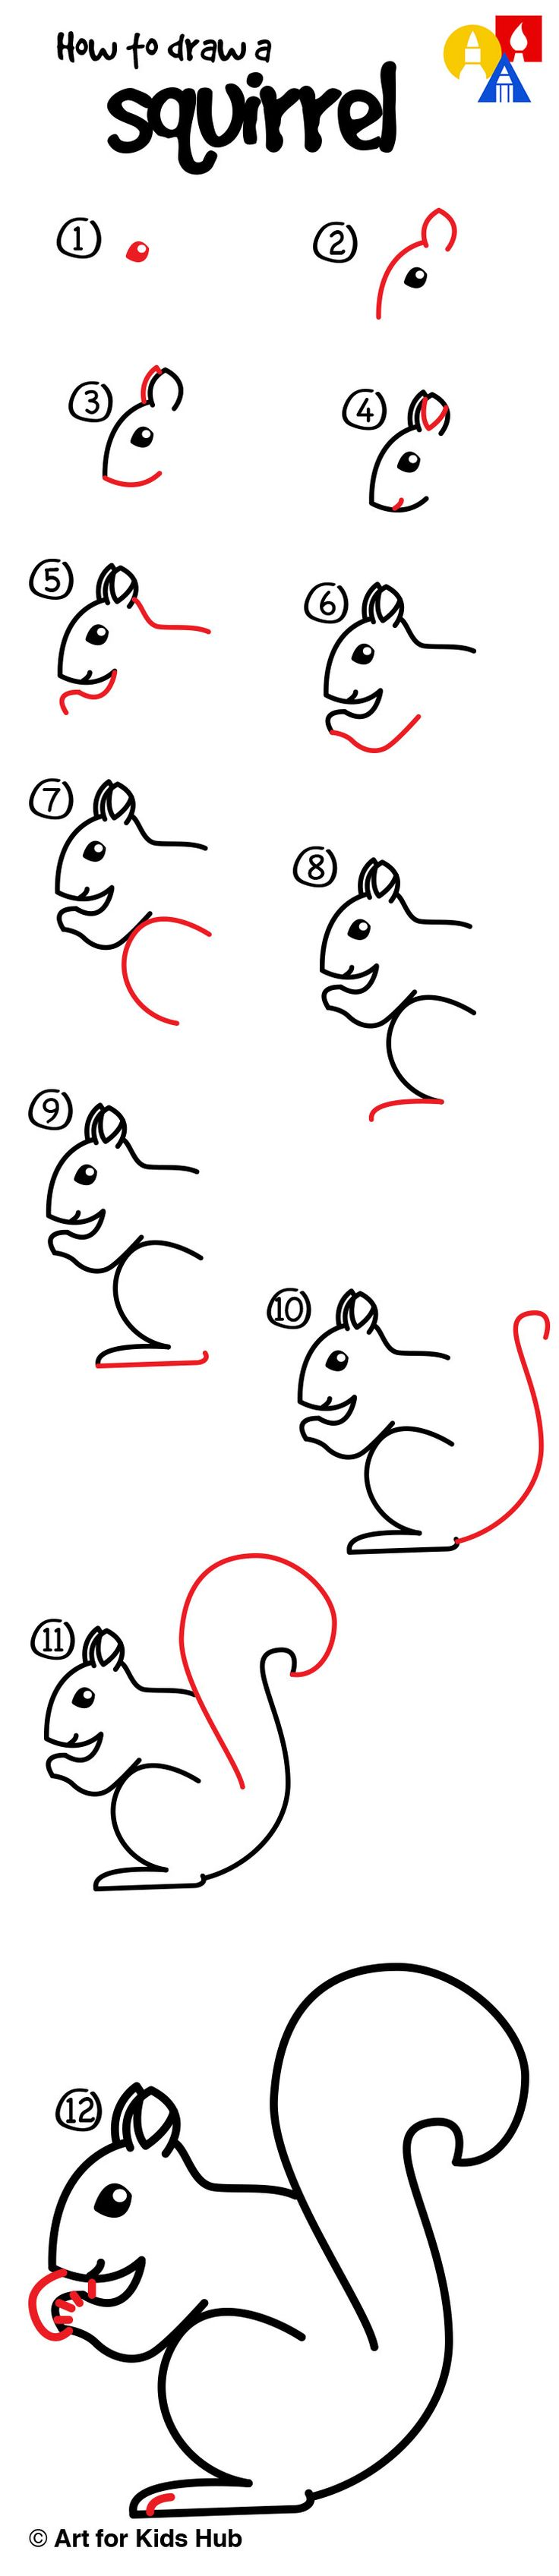 Learn how to draw a squirrel.